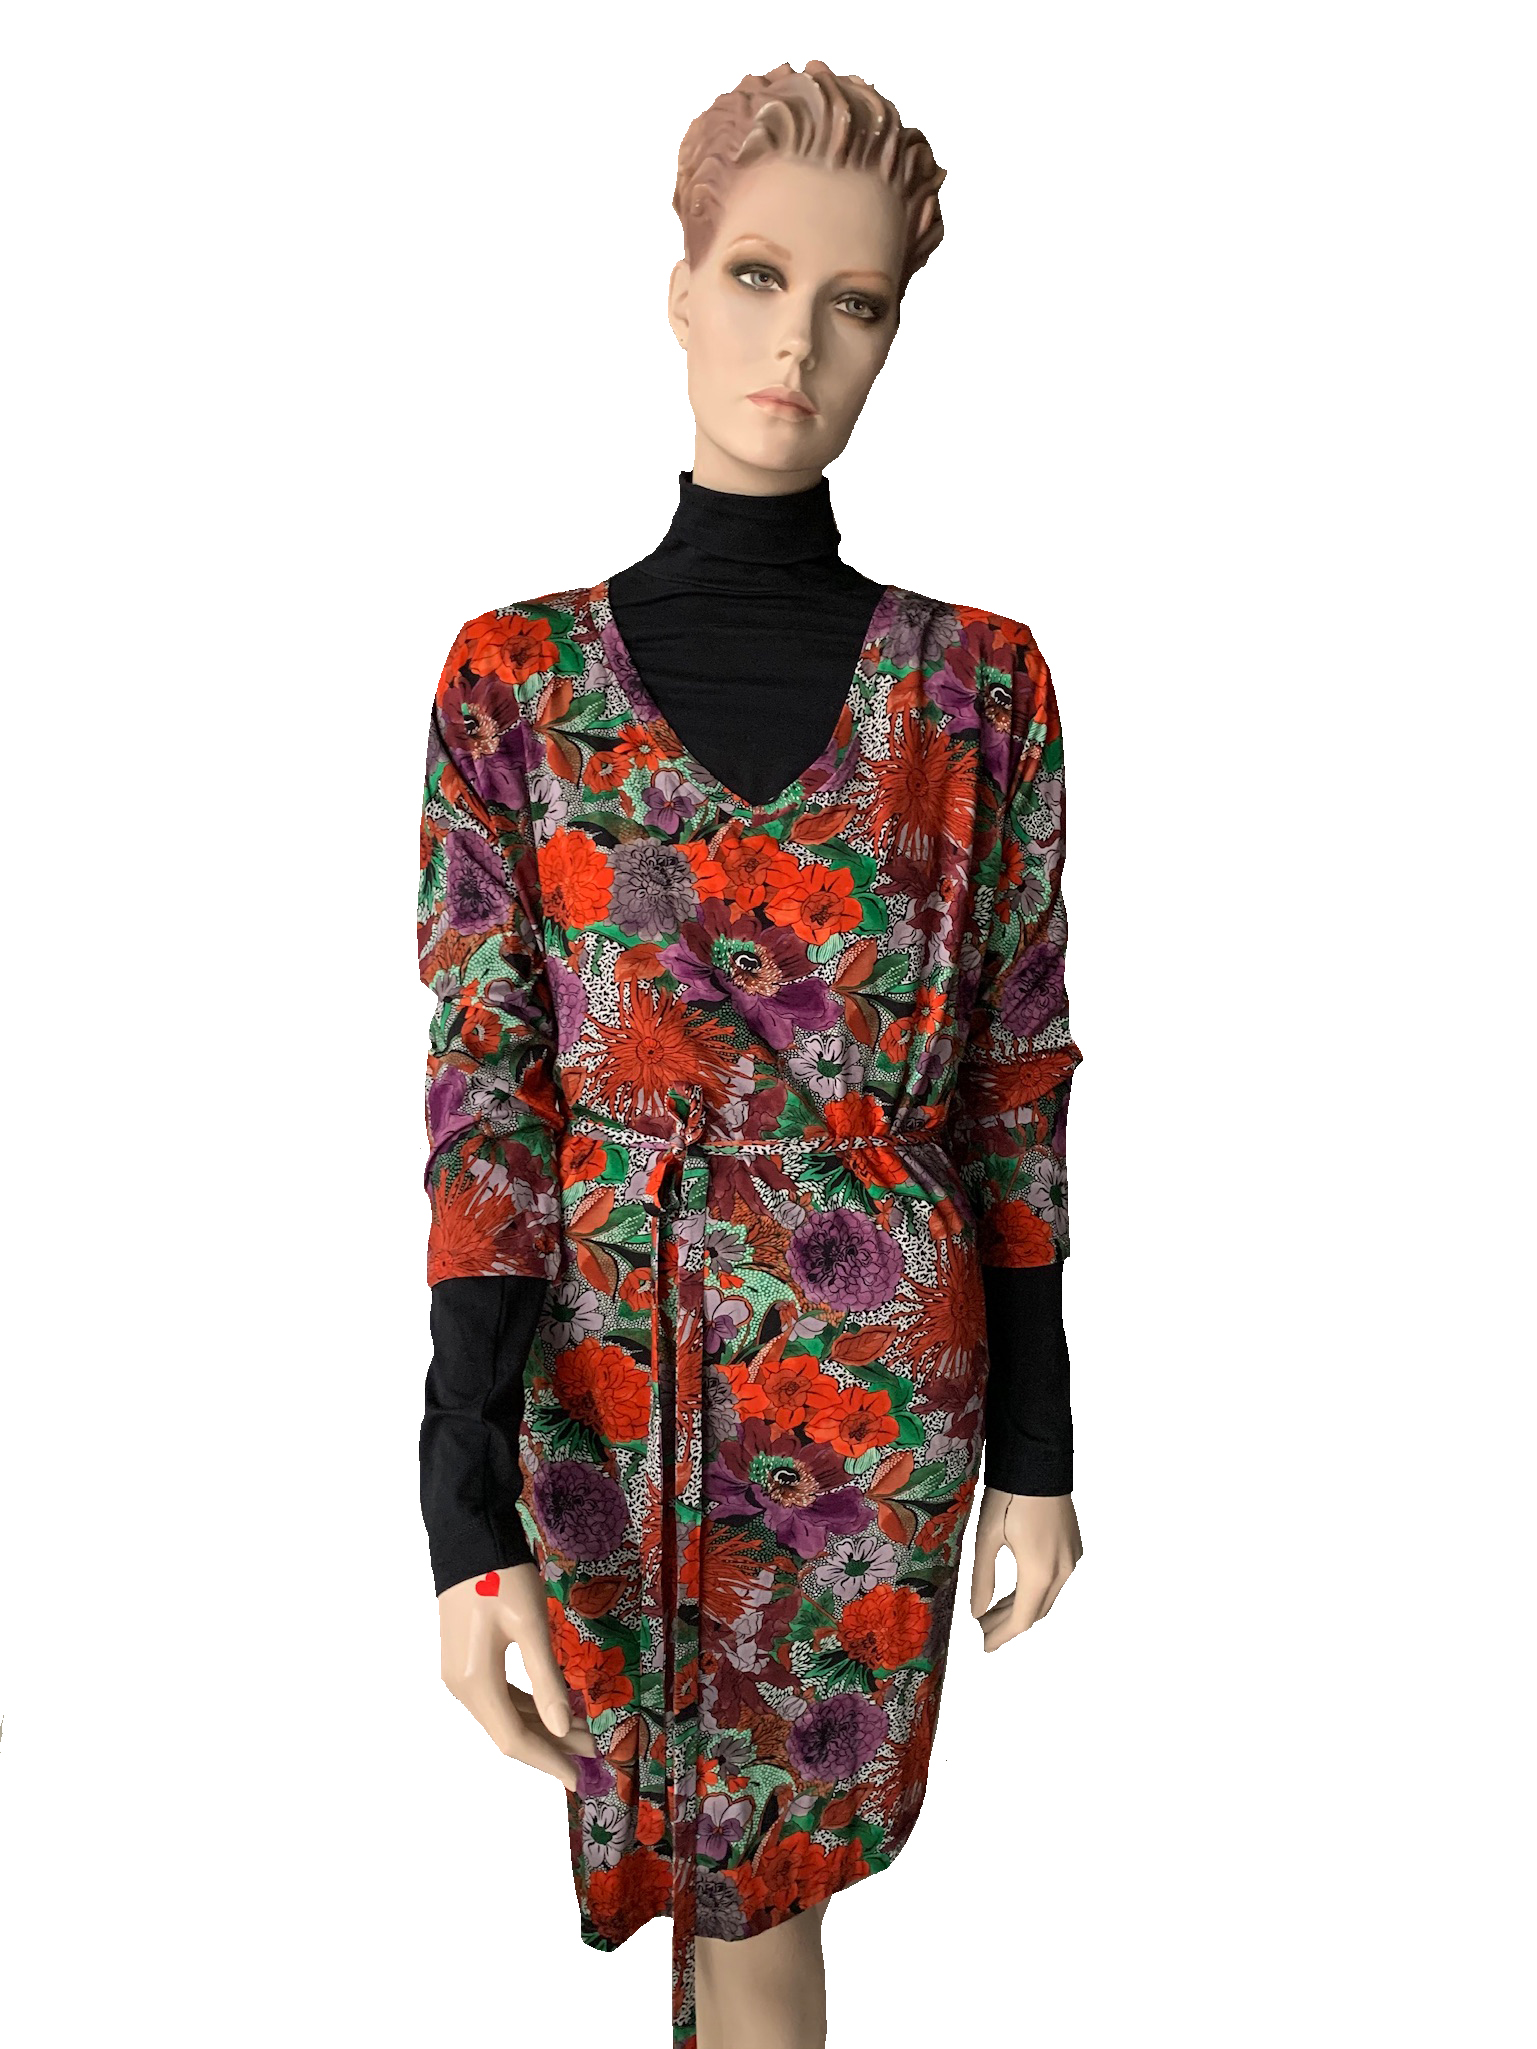 Dress - tuniek jersey print